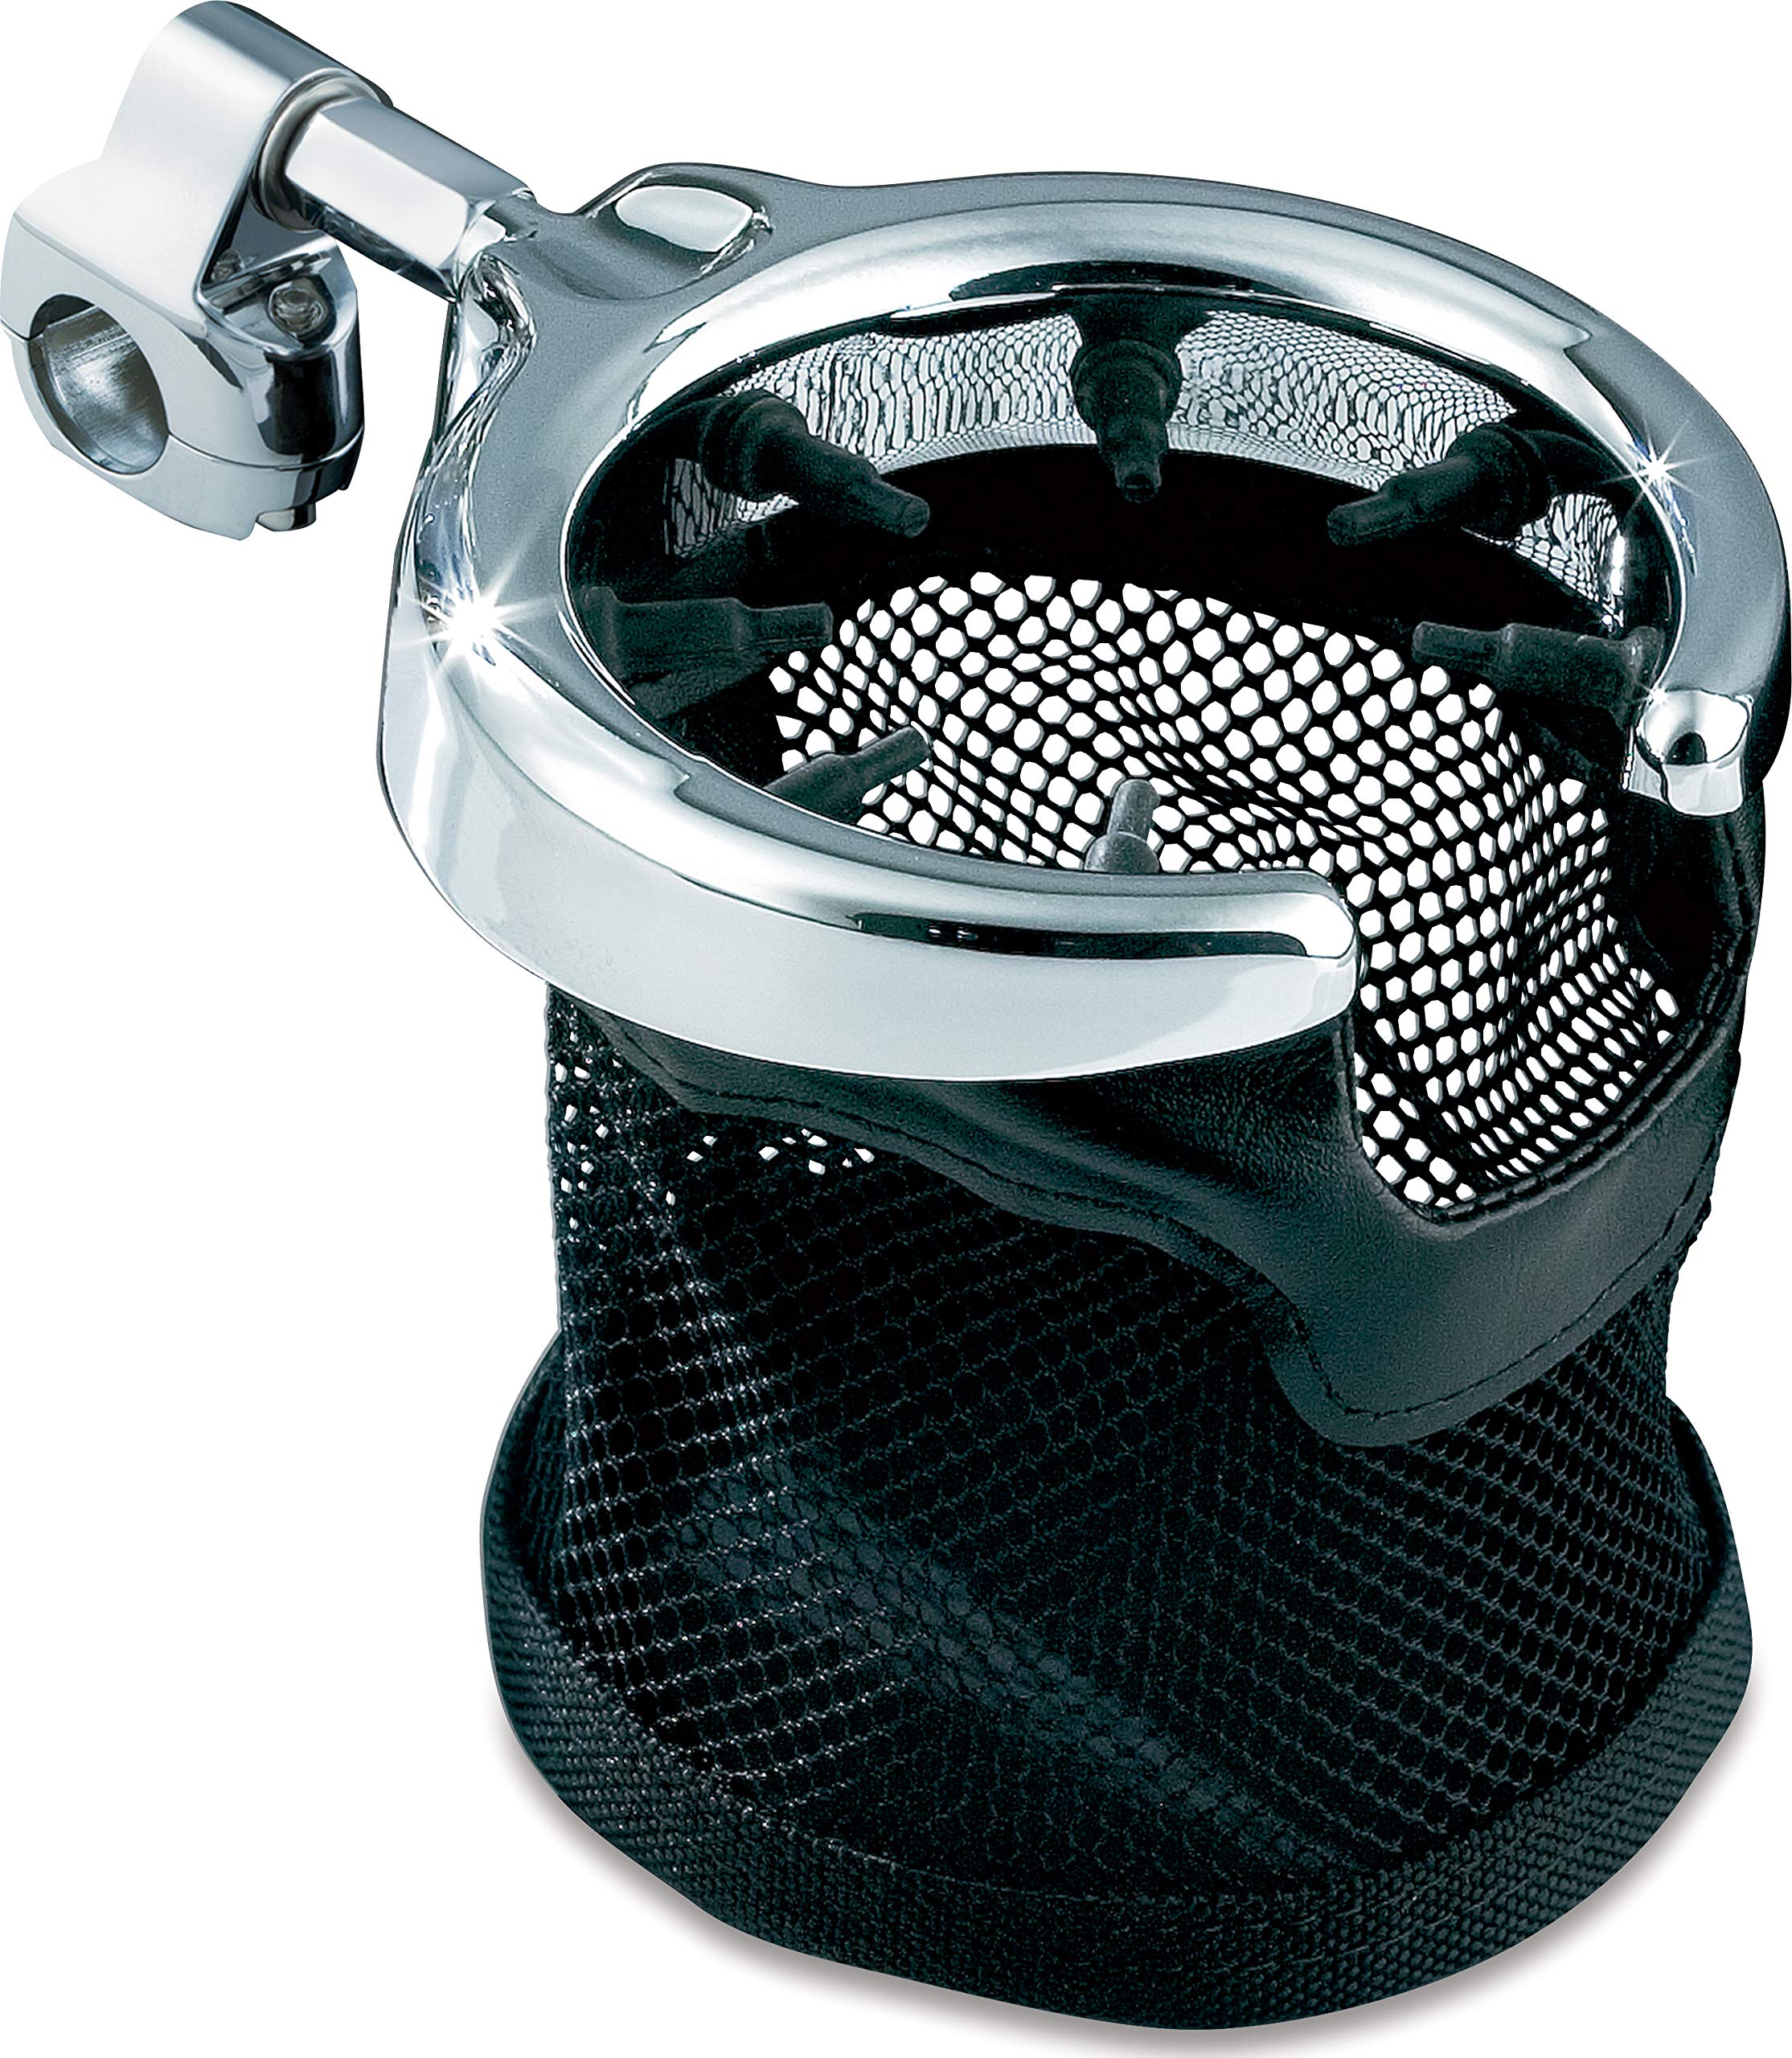 Kuryakyn 1484 Motorcycle Accessory: Passenger Drink/Cup Holder with Mesh Basket for Harley-Davidson Motorcycles with 1/2'' Diameter Grab Rail, Chrome